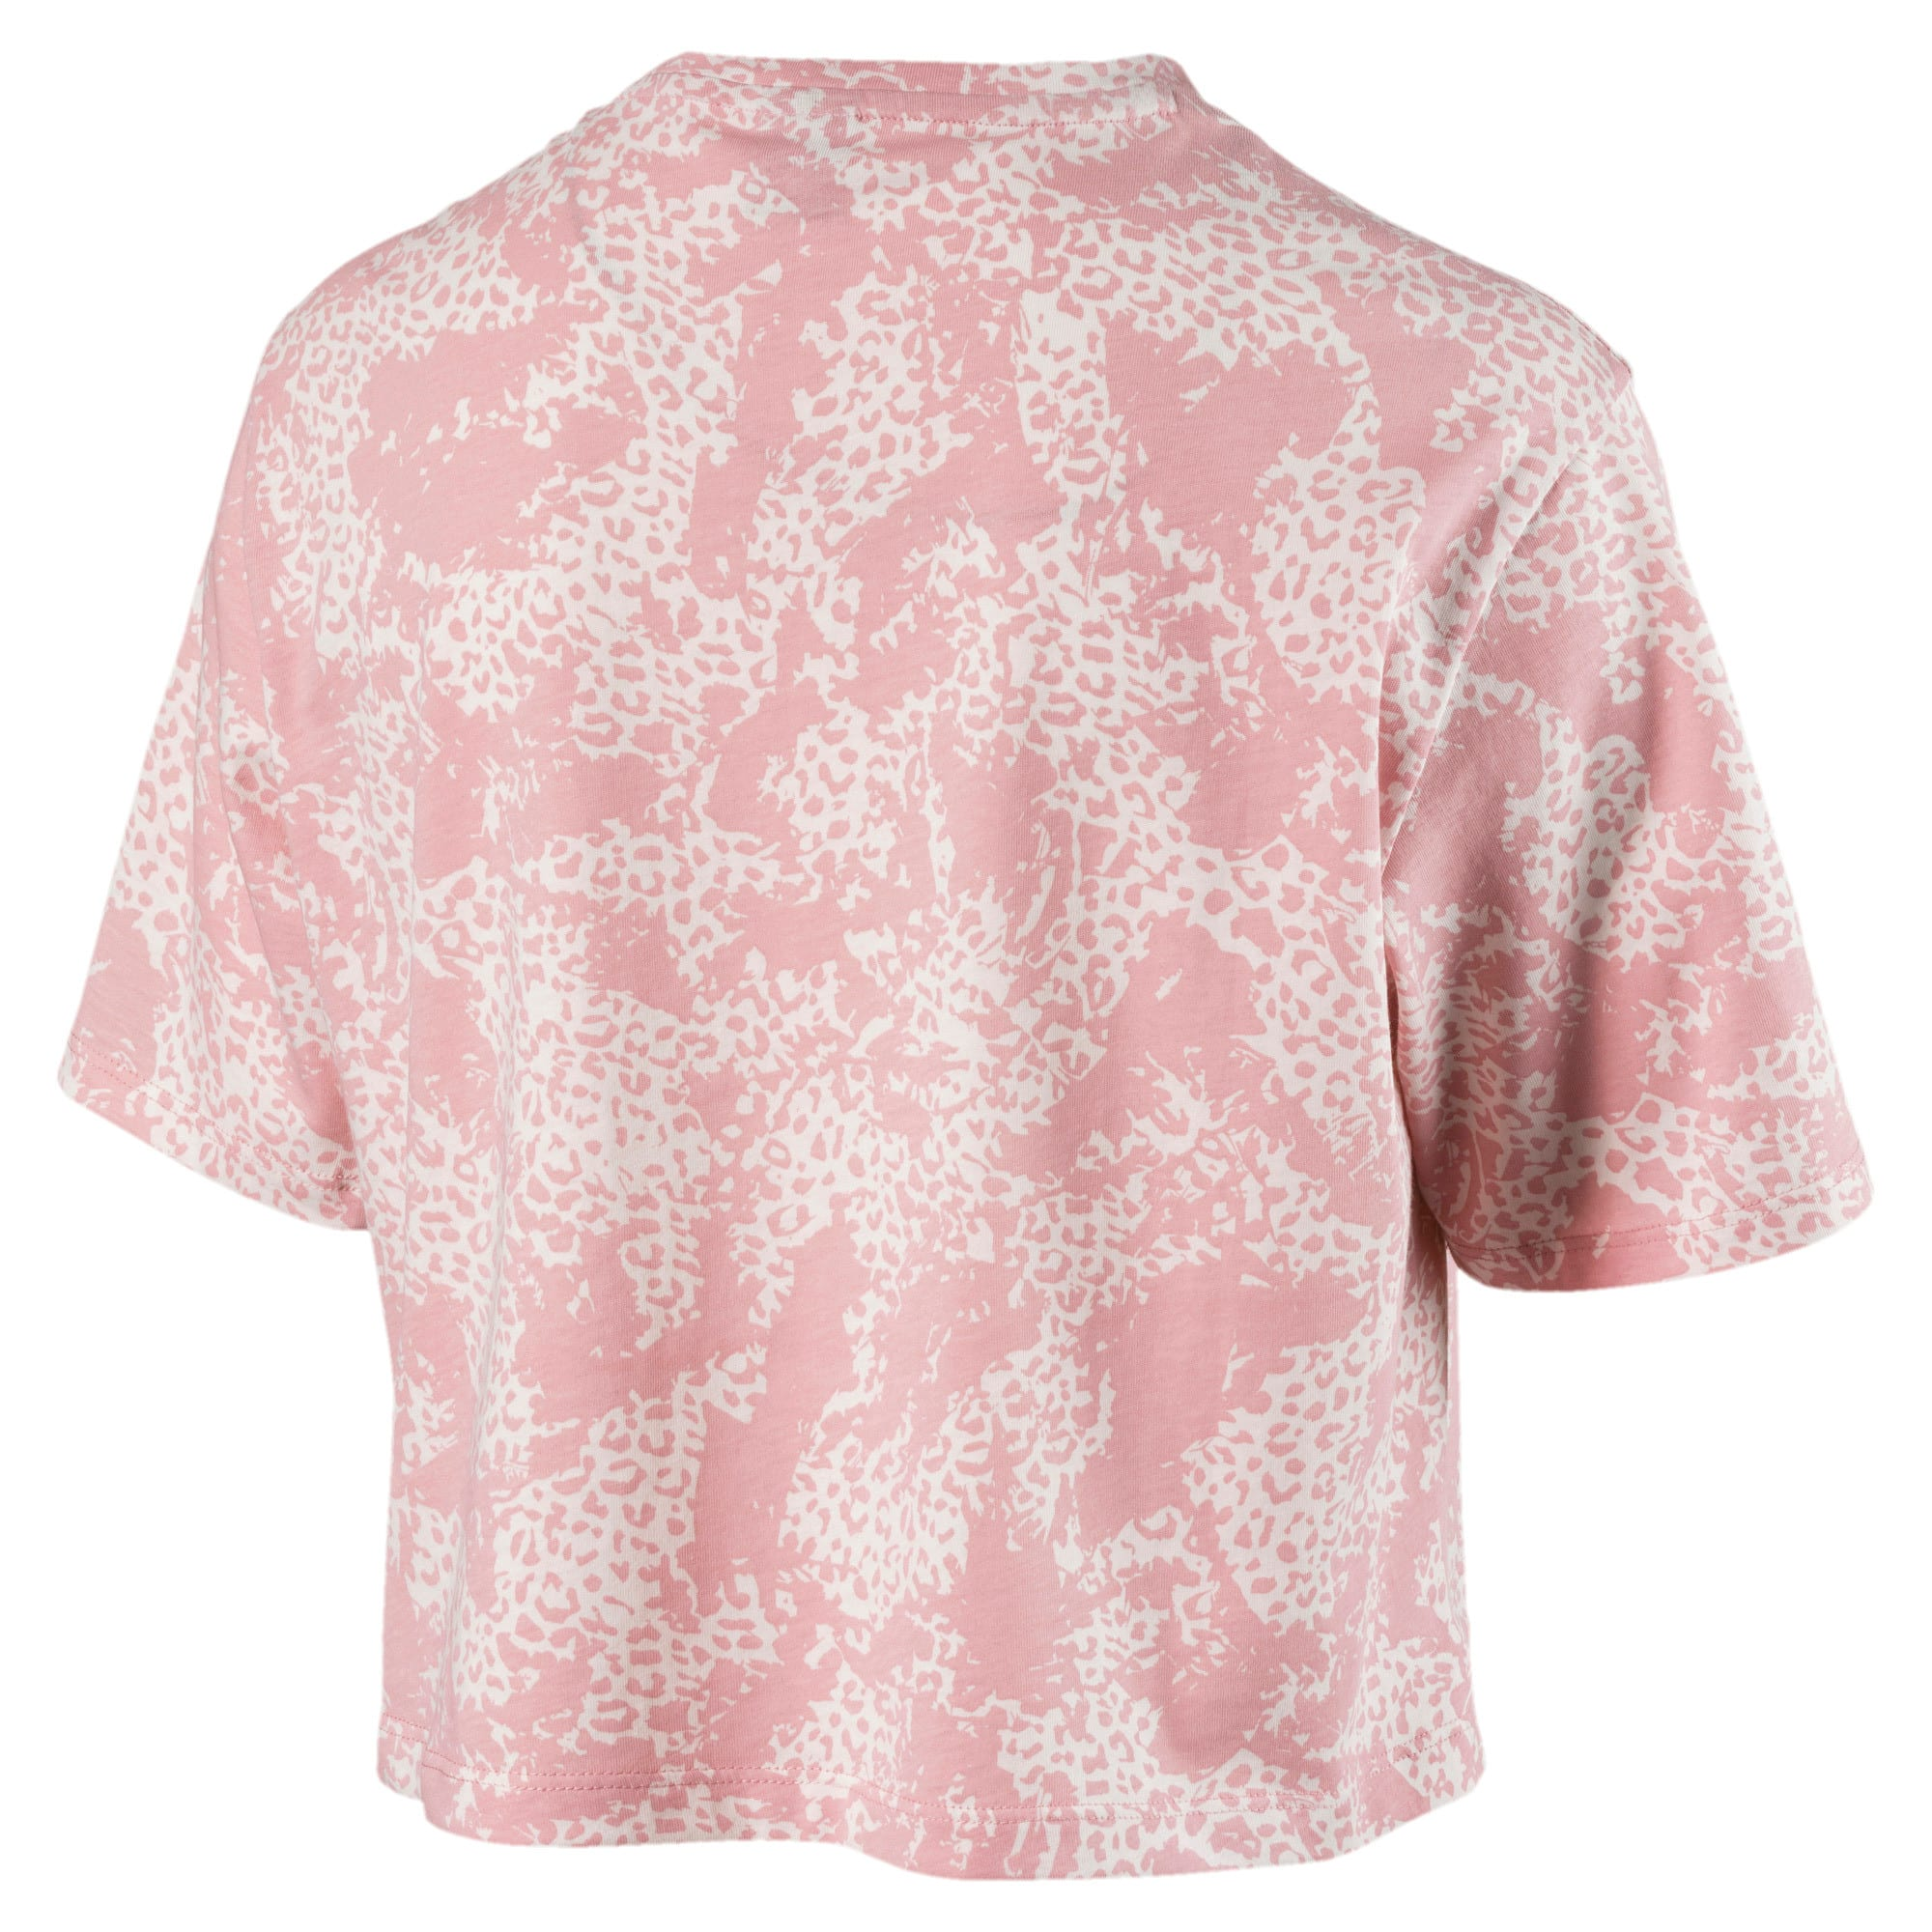 Thumbnail 5 of Elevated Essentials Cropped Women's Sweater, Bridal Rose, medium-IND